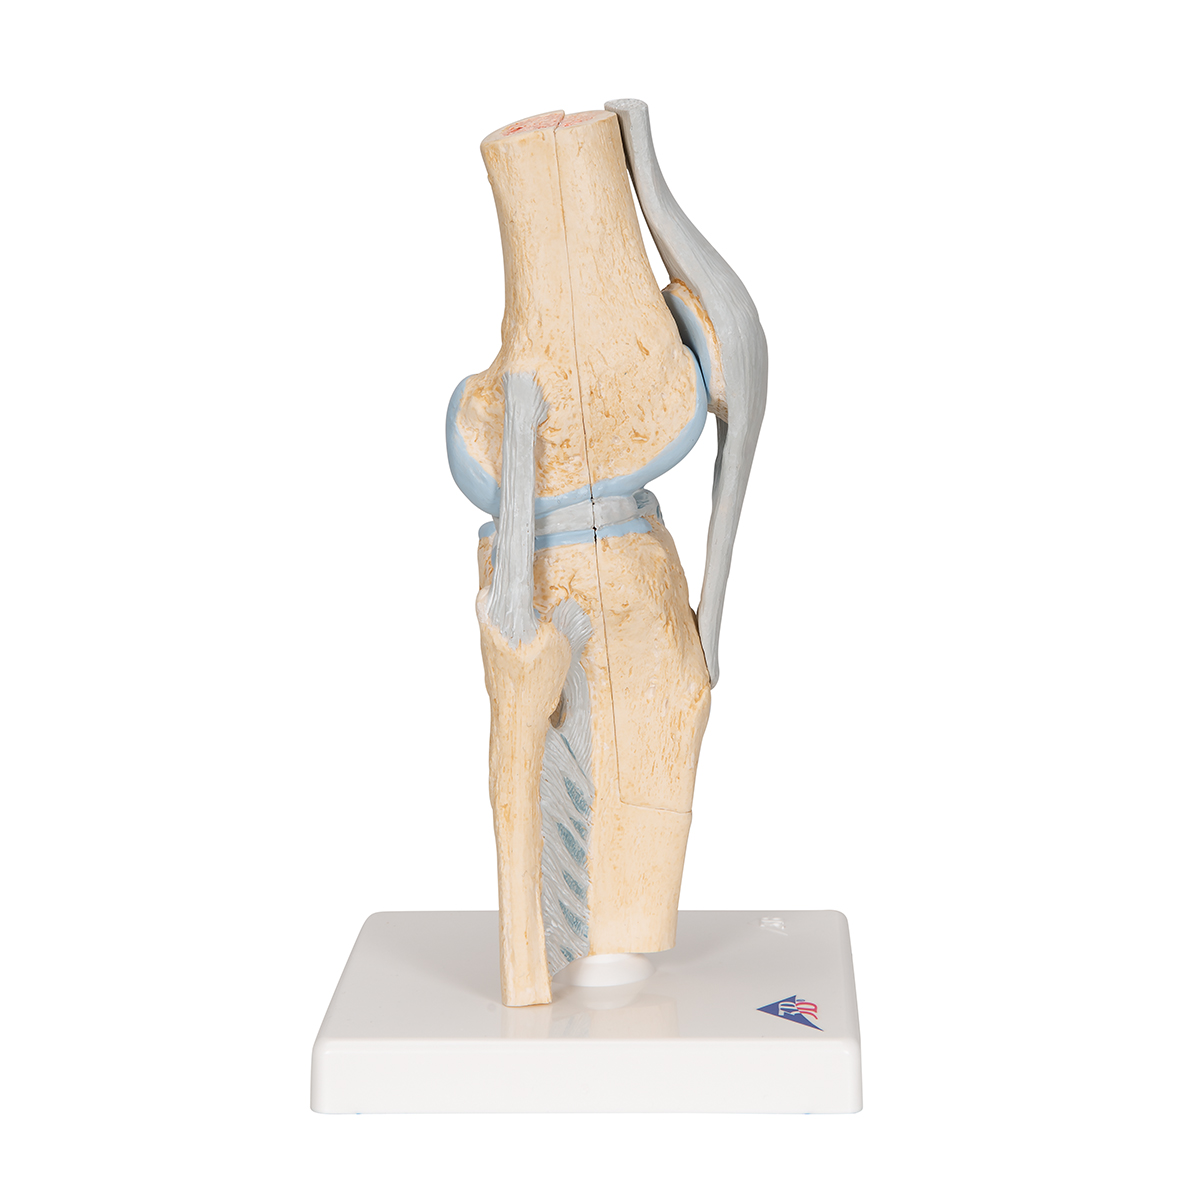 ZLF Human Knee Model Knee Ligament Model with Base Doctor-Patient Communication and Science Education Flexible Naturally Larger